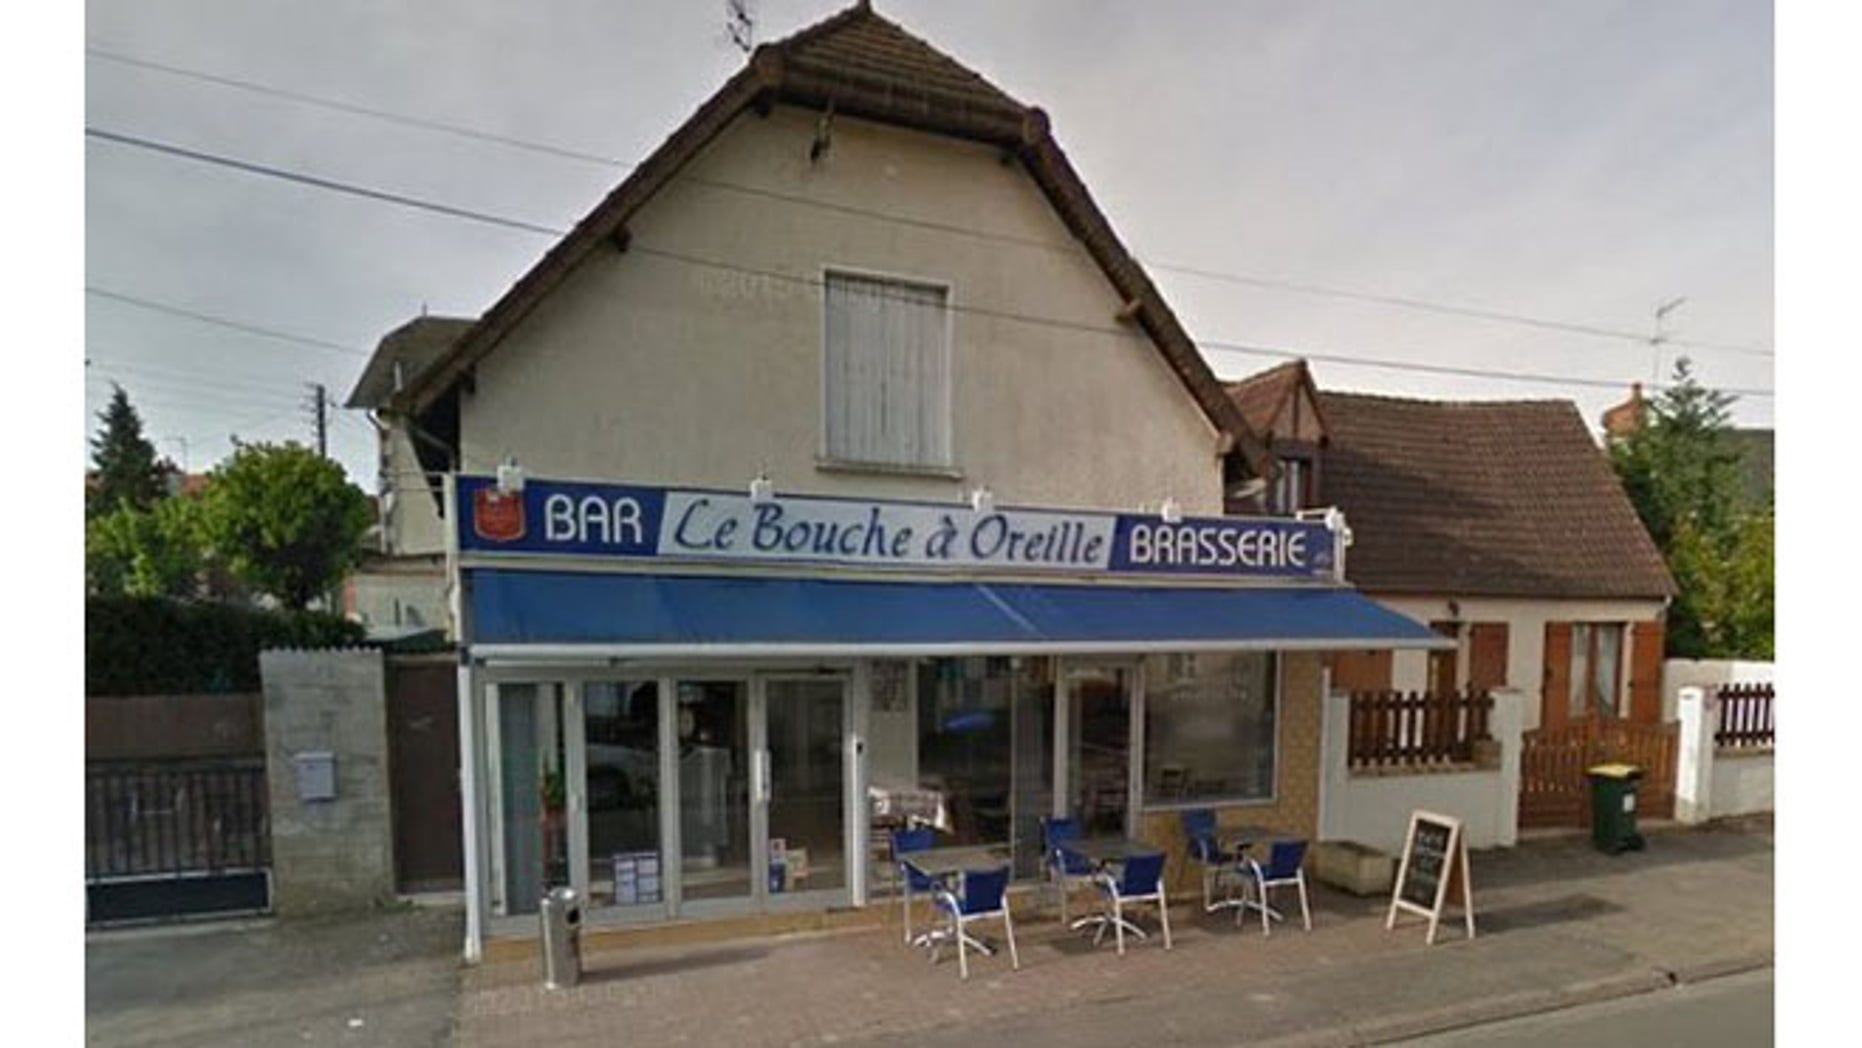 Bouche à Oreille cafe in Bourges, France. (Google Street View)